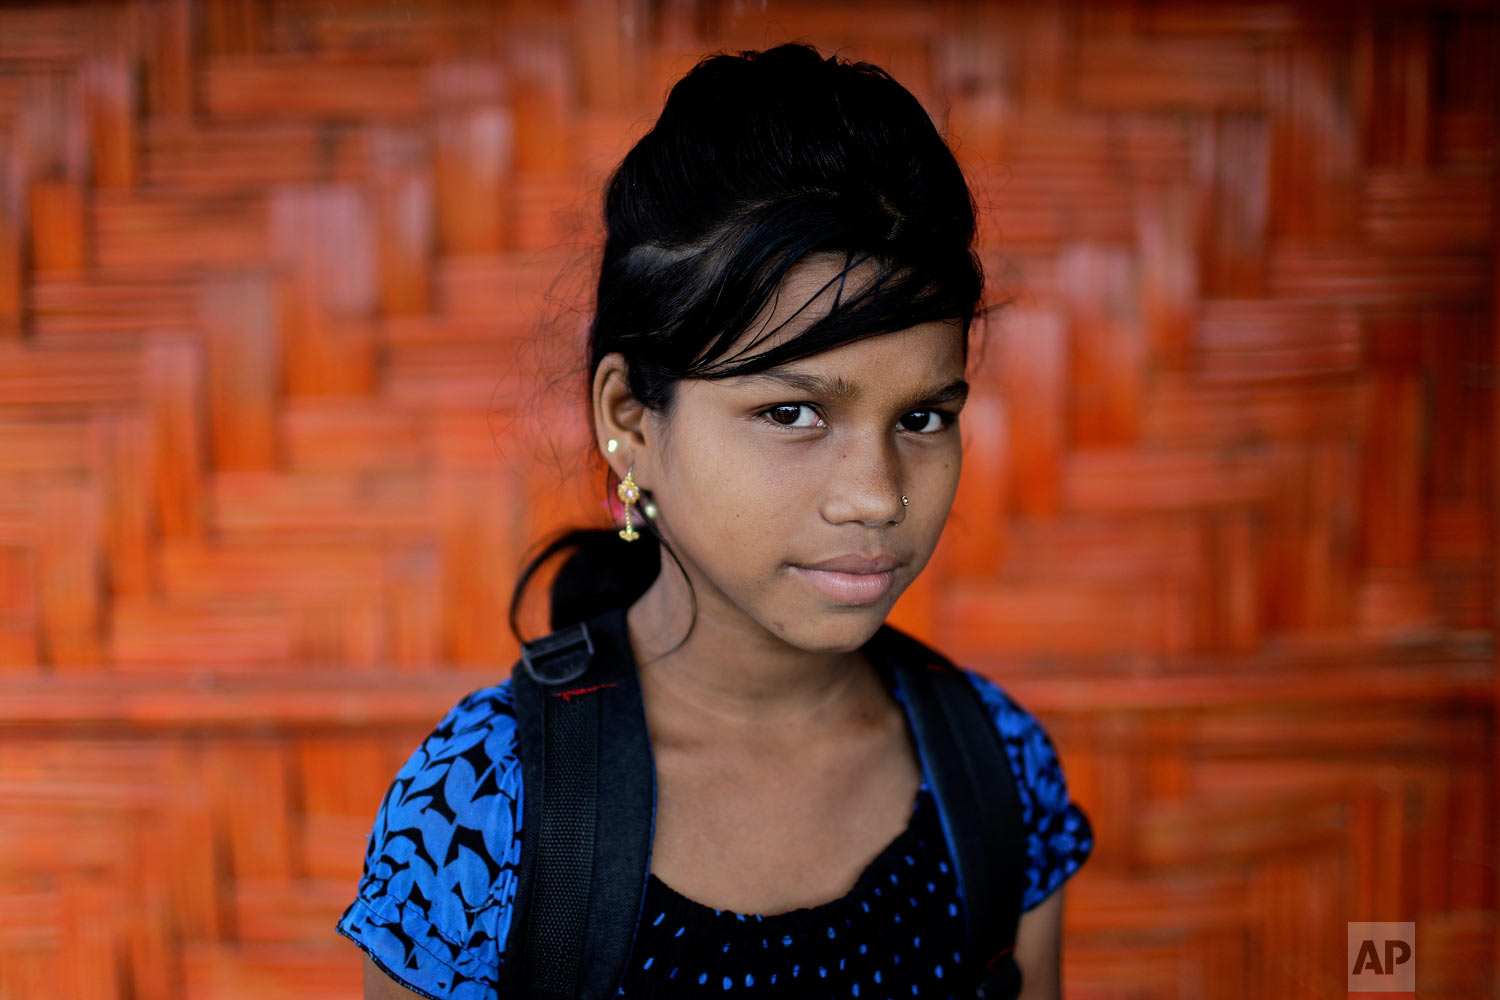 Astafa, 10, poses for a portrait in front of her classroom on June 27, 2018, in Chakmarkul refugee camp, Bangladesh. (AP Photo/Wong Maye-E)